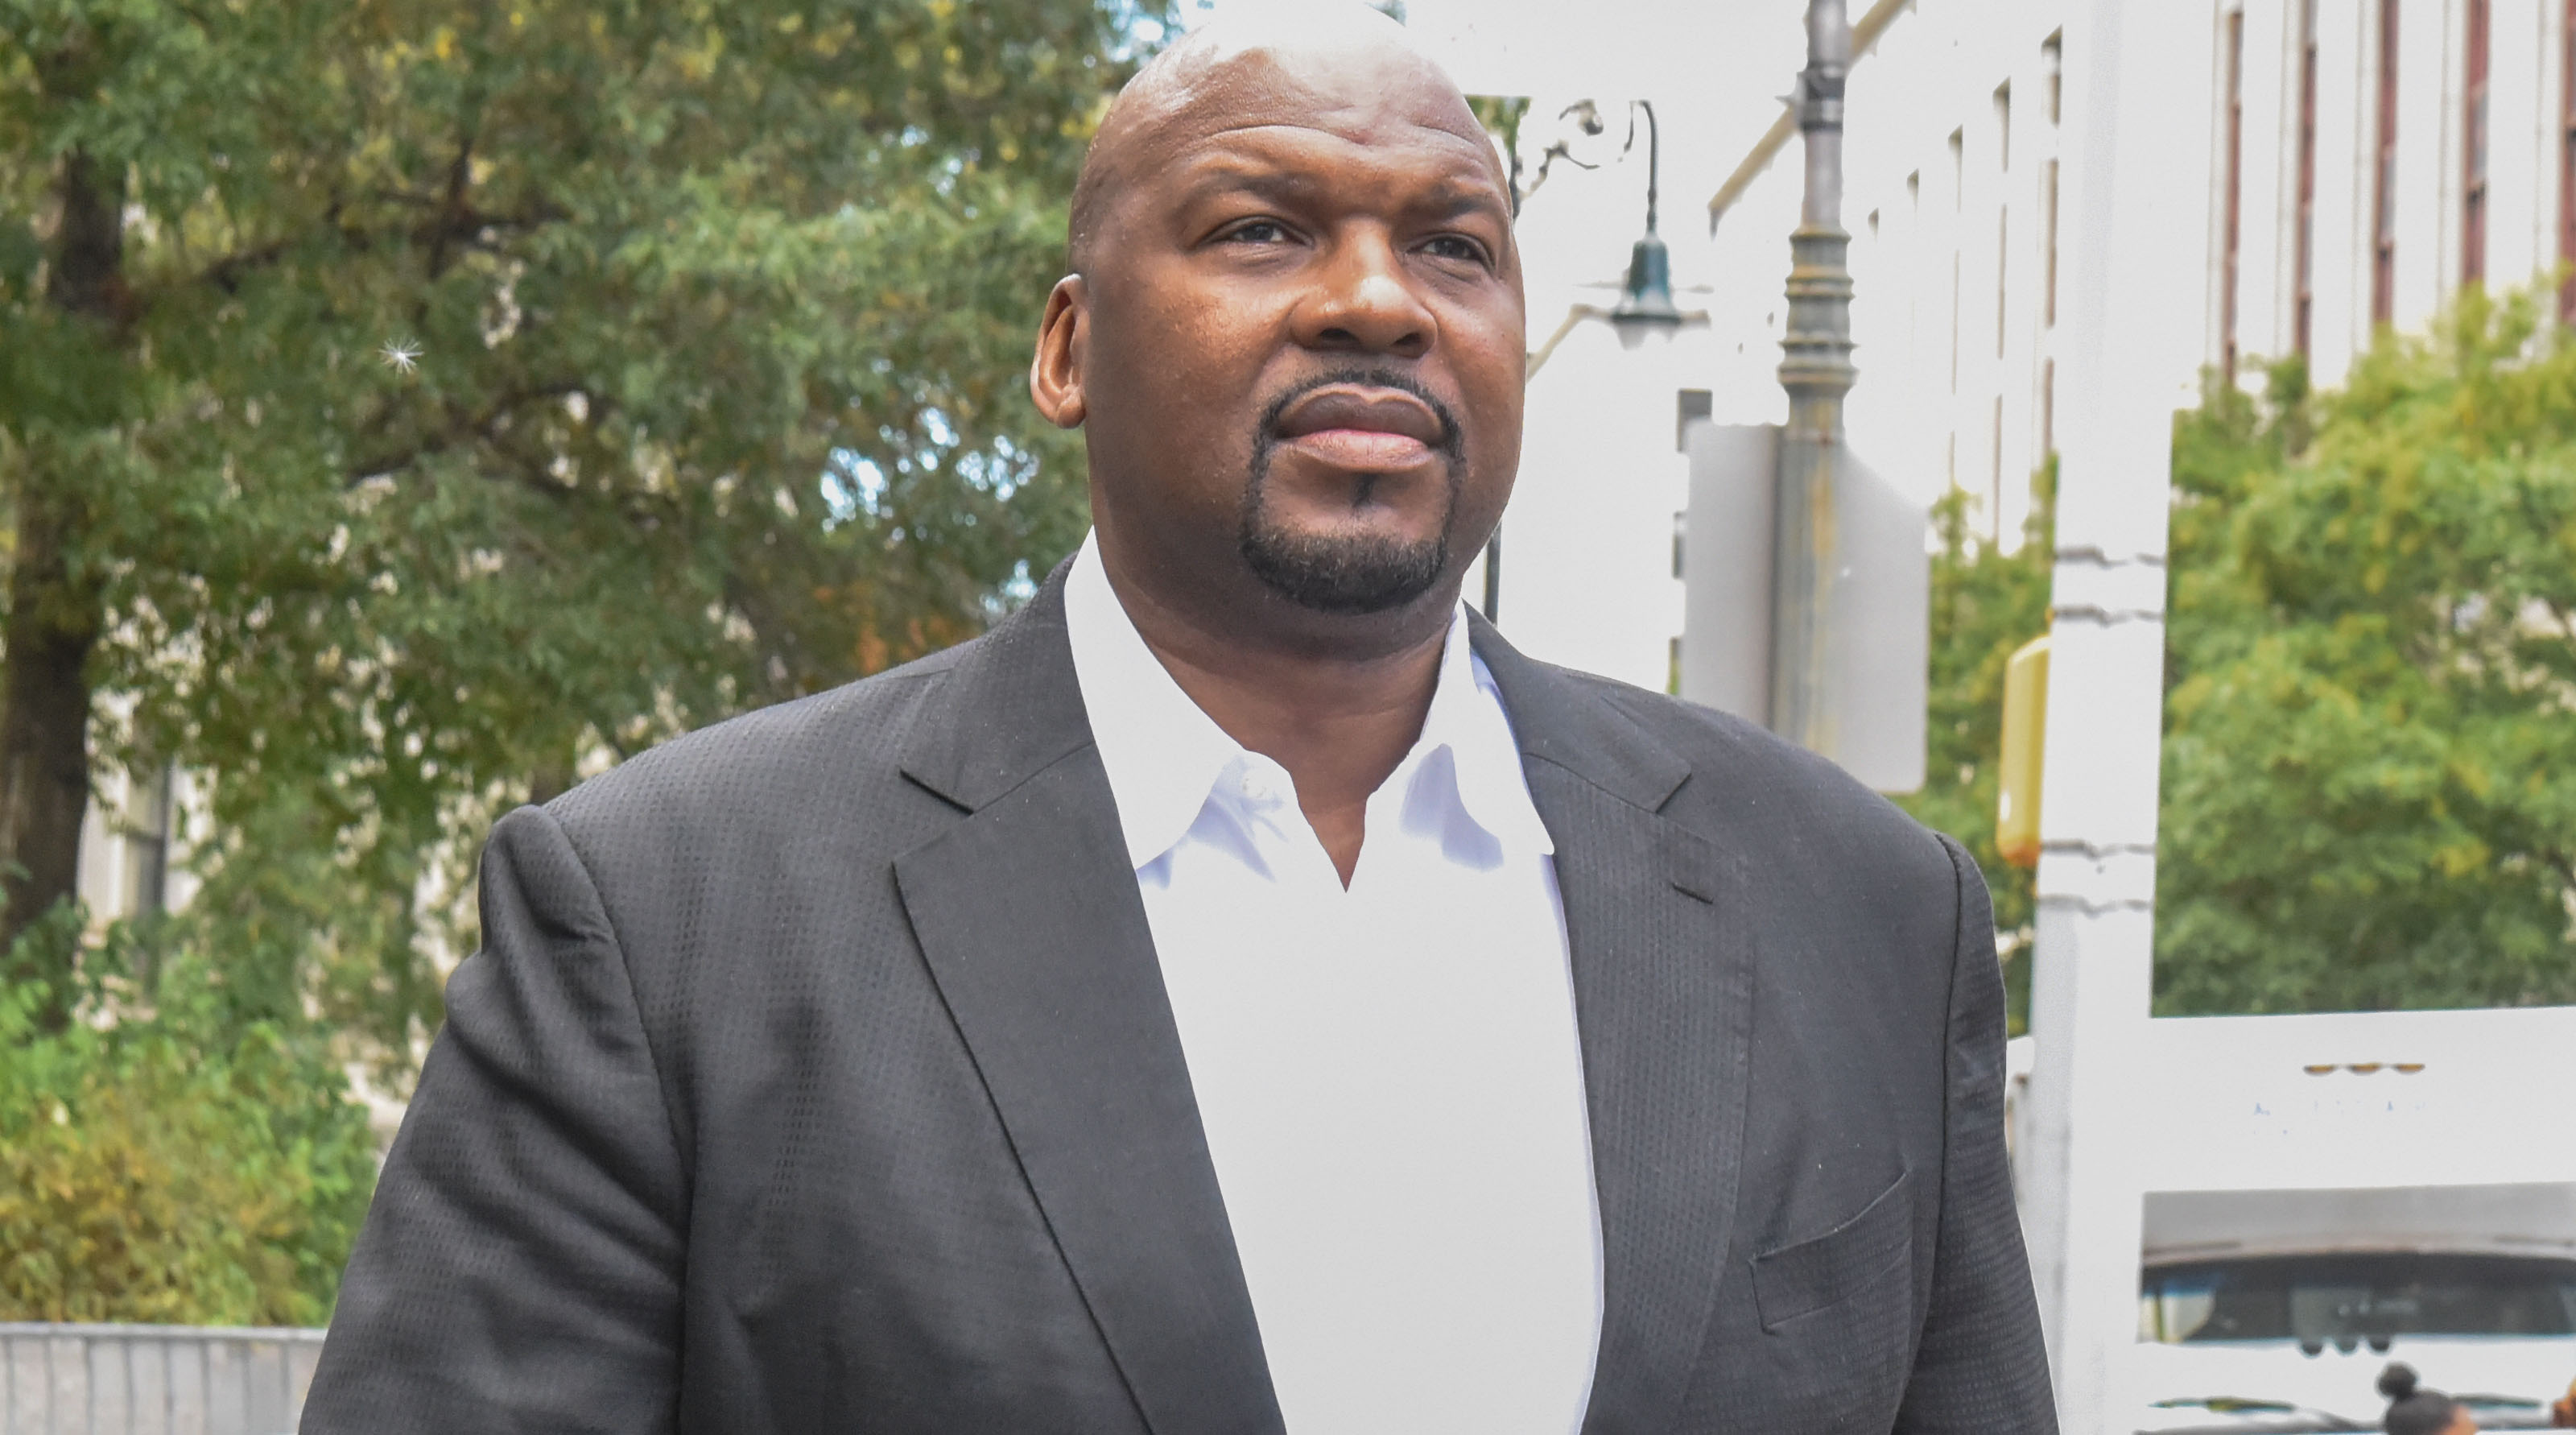 Chuck Person Auburn assistant reportedly indicted by grand jury